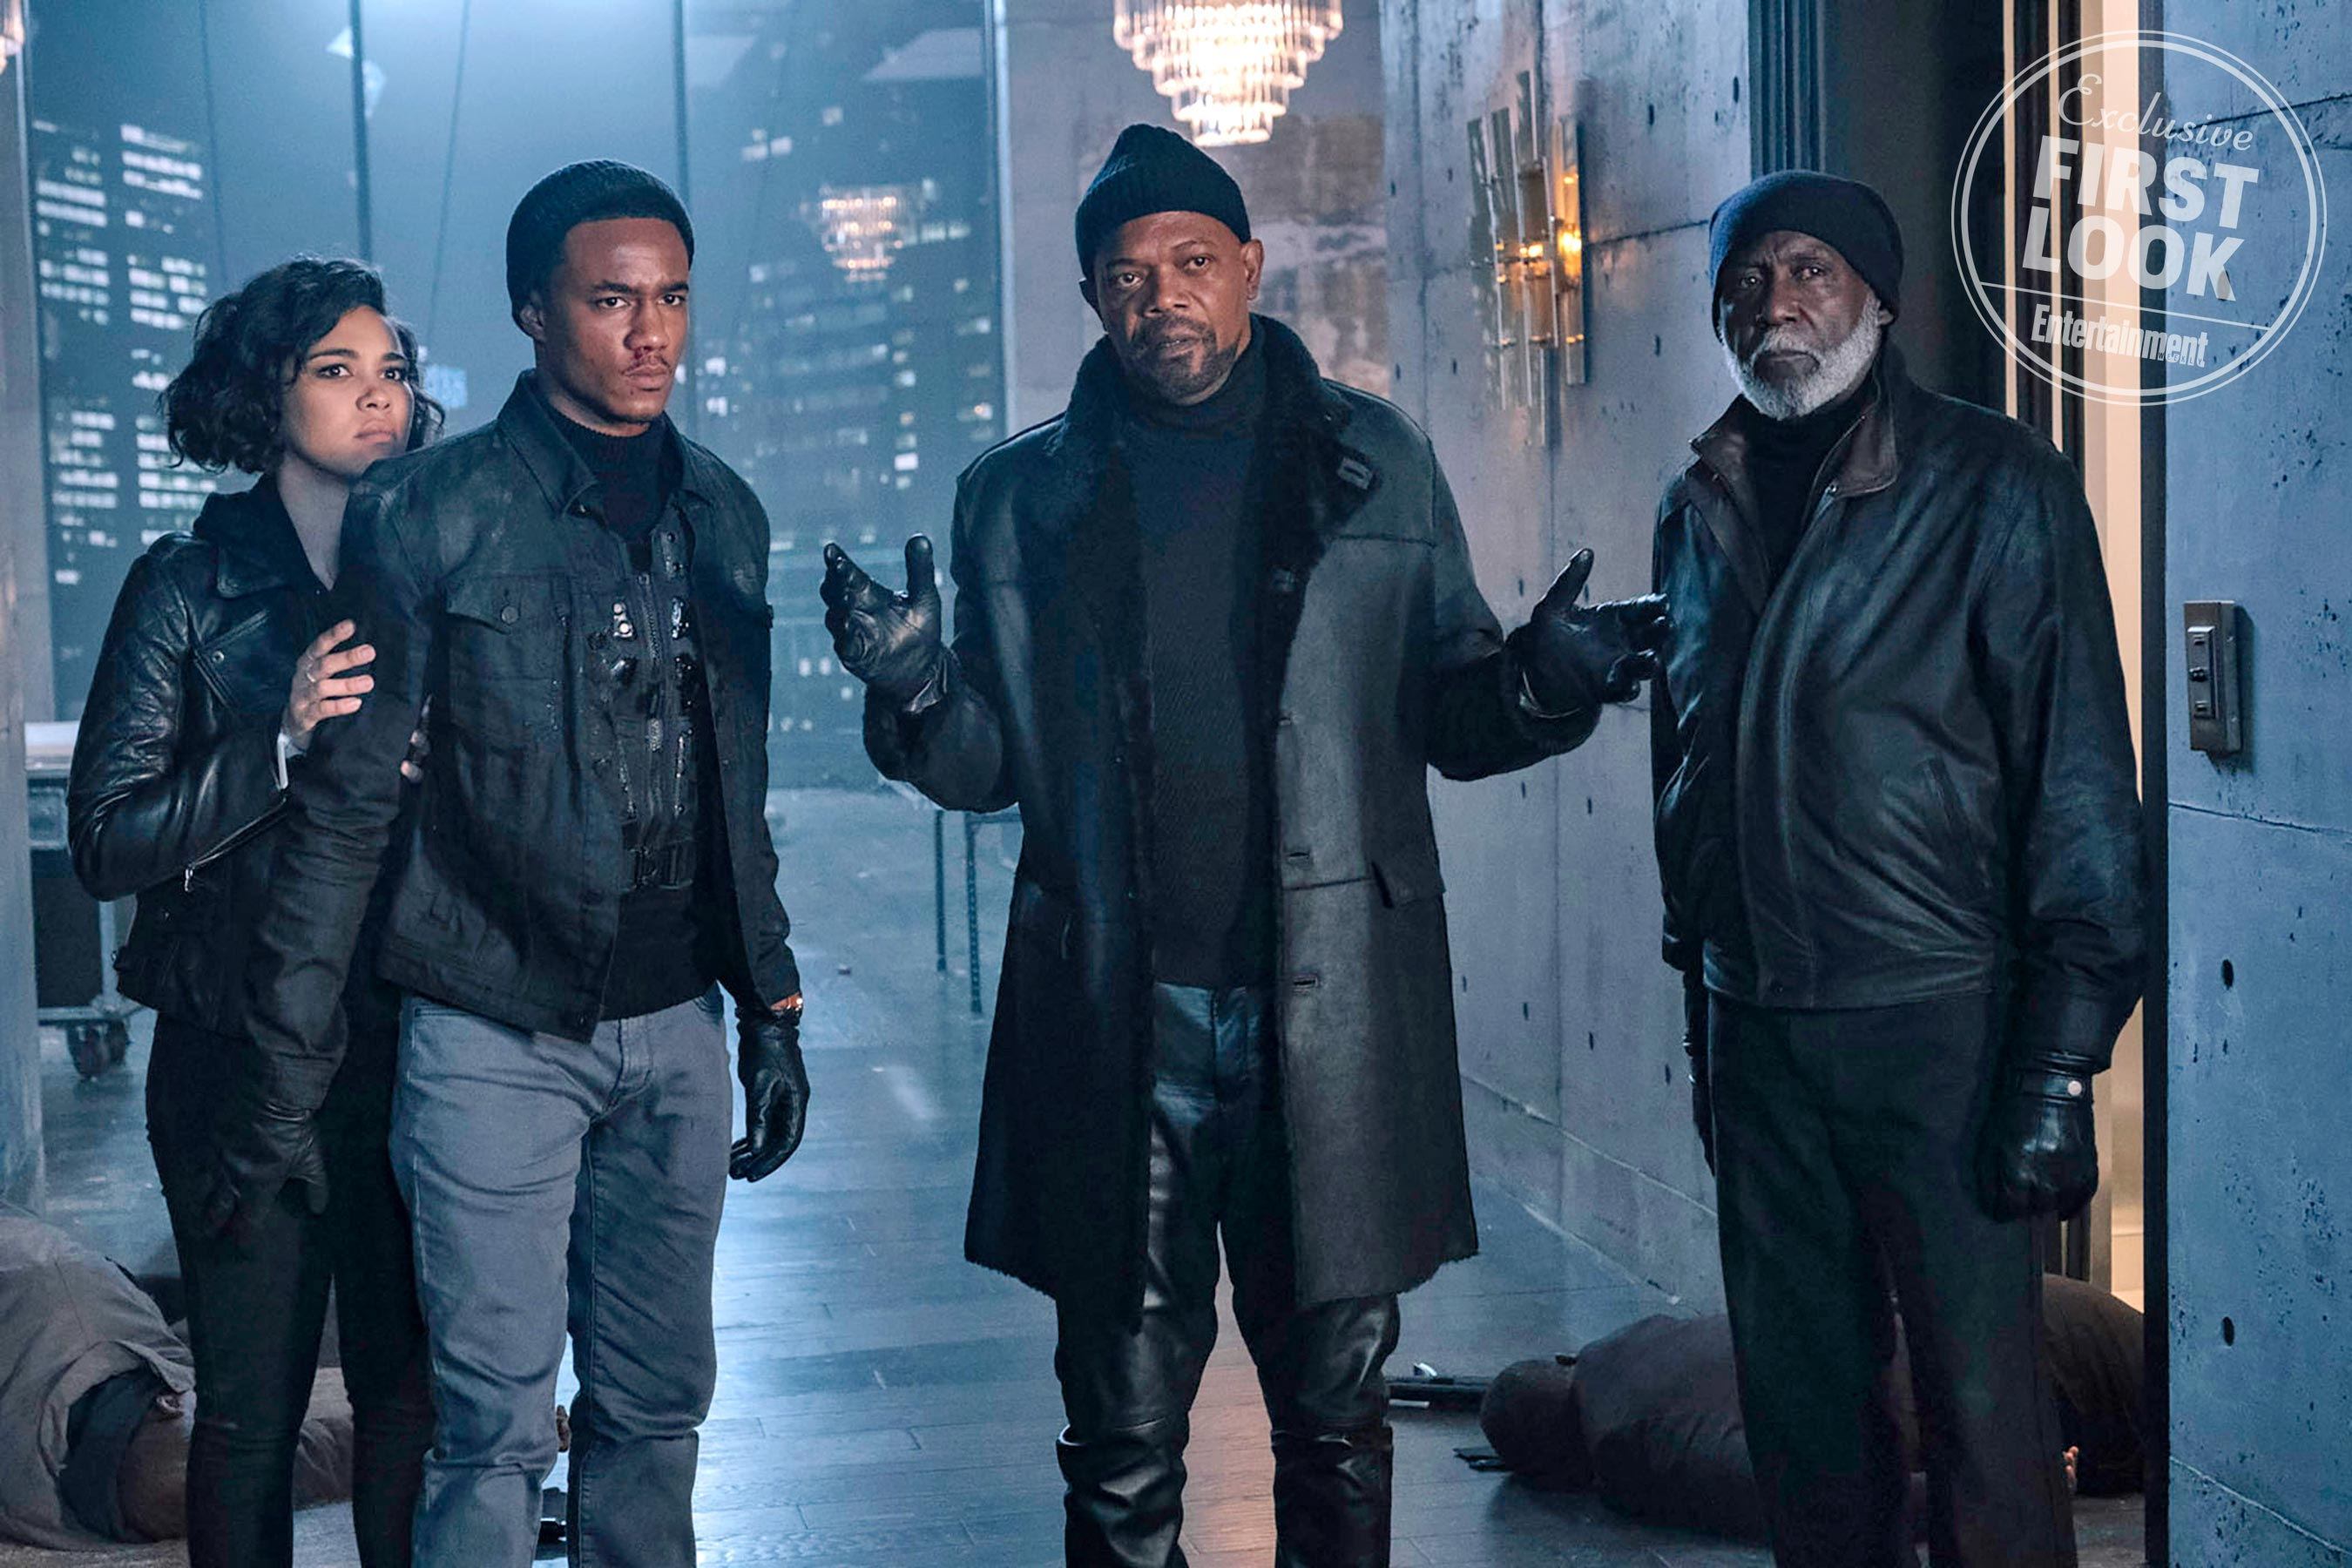 Samuel L. Jackson suits up again as Shaft in exclusive first look